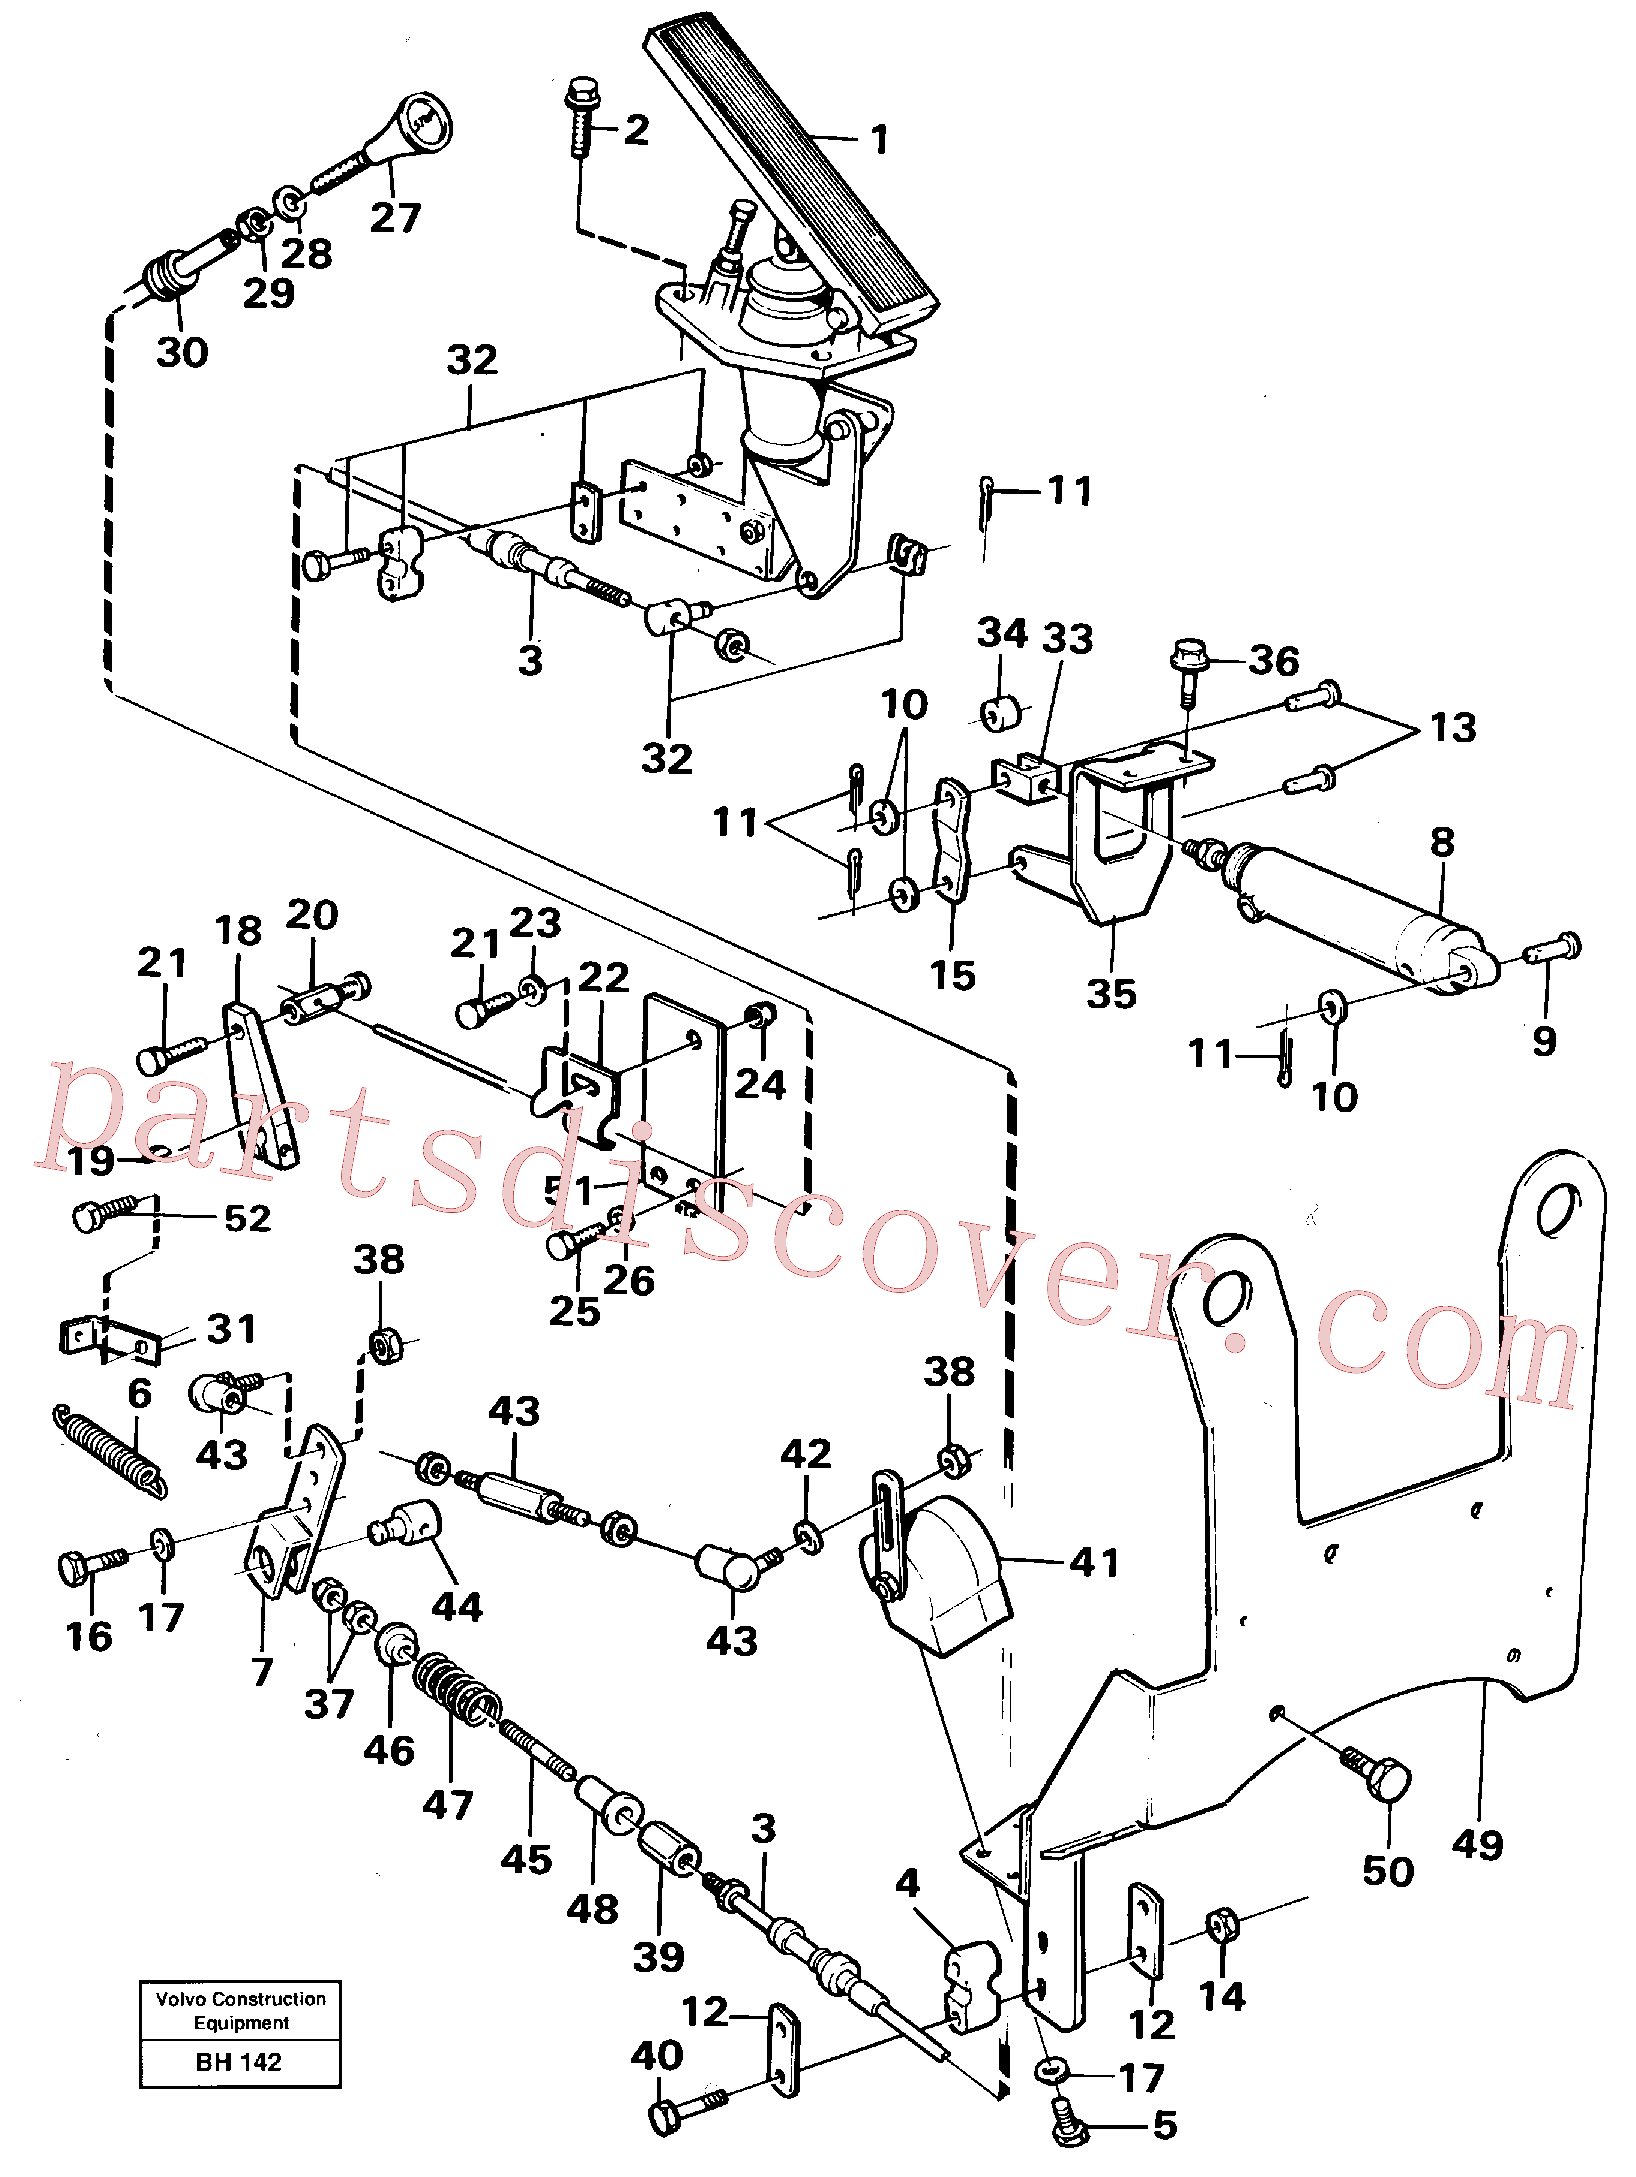 RM94146859 for Volvo Regulator control(BH142 assembly)